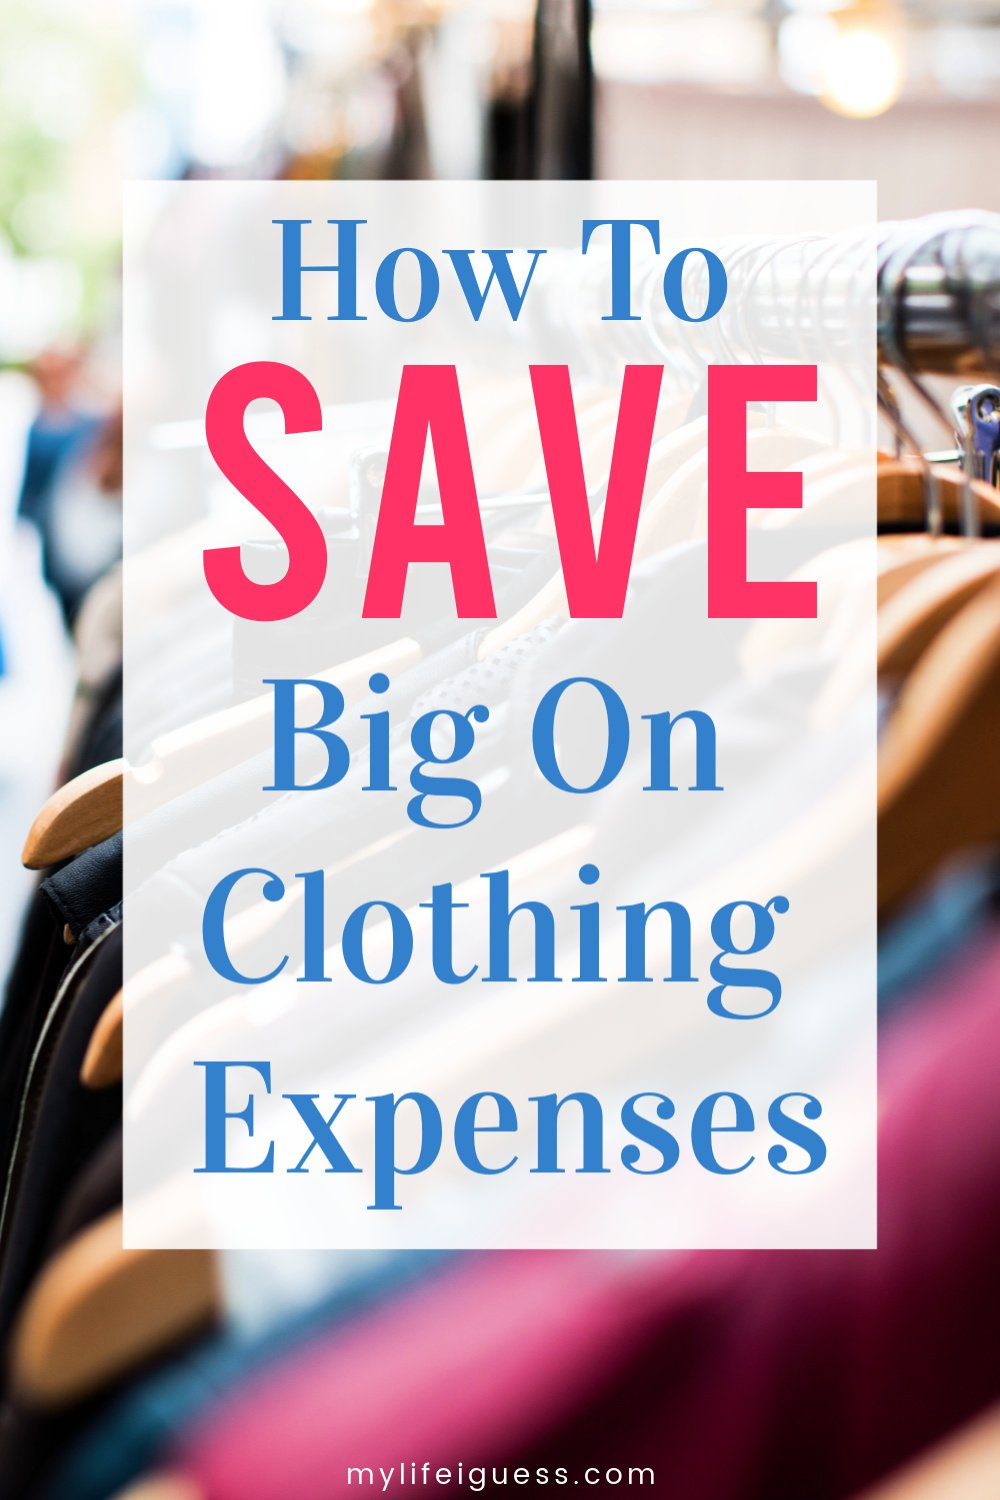 How To Save Big on Clothing Expenses - You can save big on your clothing expenses and stick to your budget by learning to creatively to stretch your hard earned dollars.  clothes, clothing, clothing expenses, clothing budget, how to afford clothes, where to shop, deals, sales, save on clothes, save on clothing, tips, tricks, save money